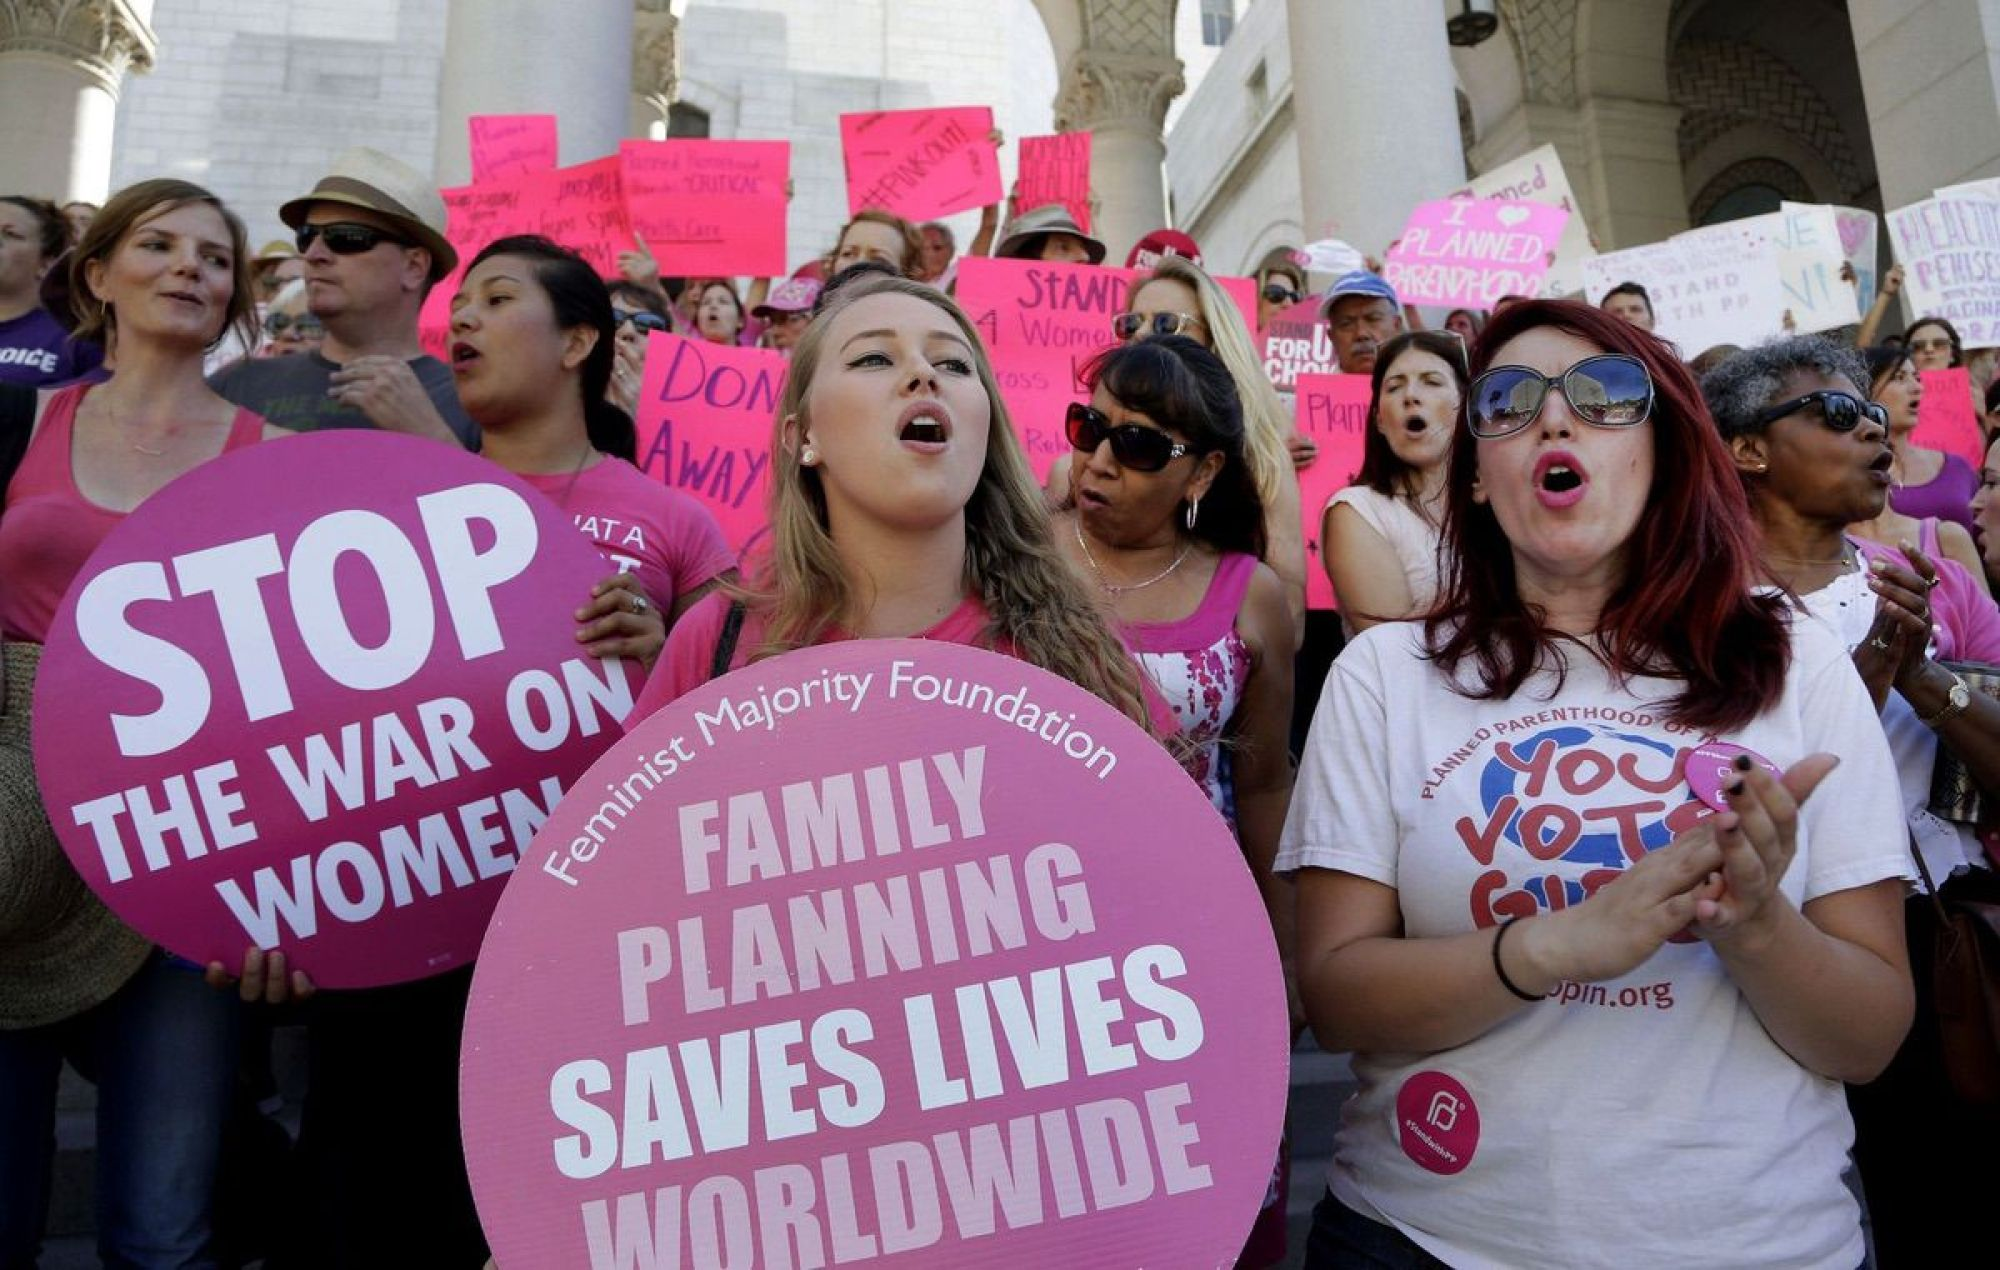 """Planned Parenthood supporters rally for women's access to reproductive health care on """"National Pink Out Day'' at Los Angeles City Hall - Sept. 9, 2015. (AP Photo/Nick Ut, File)"""